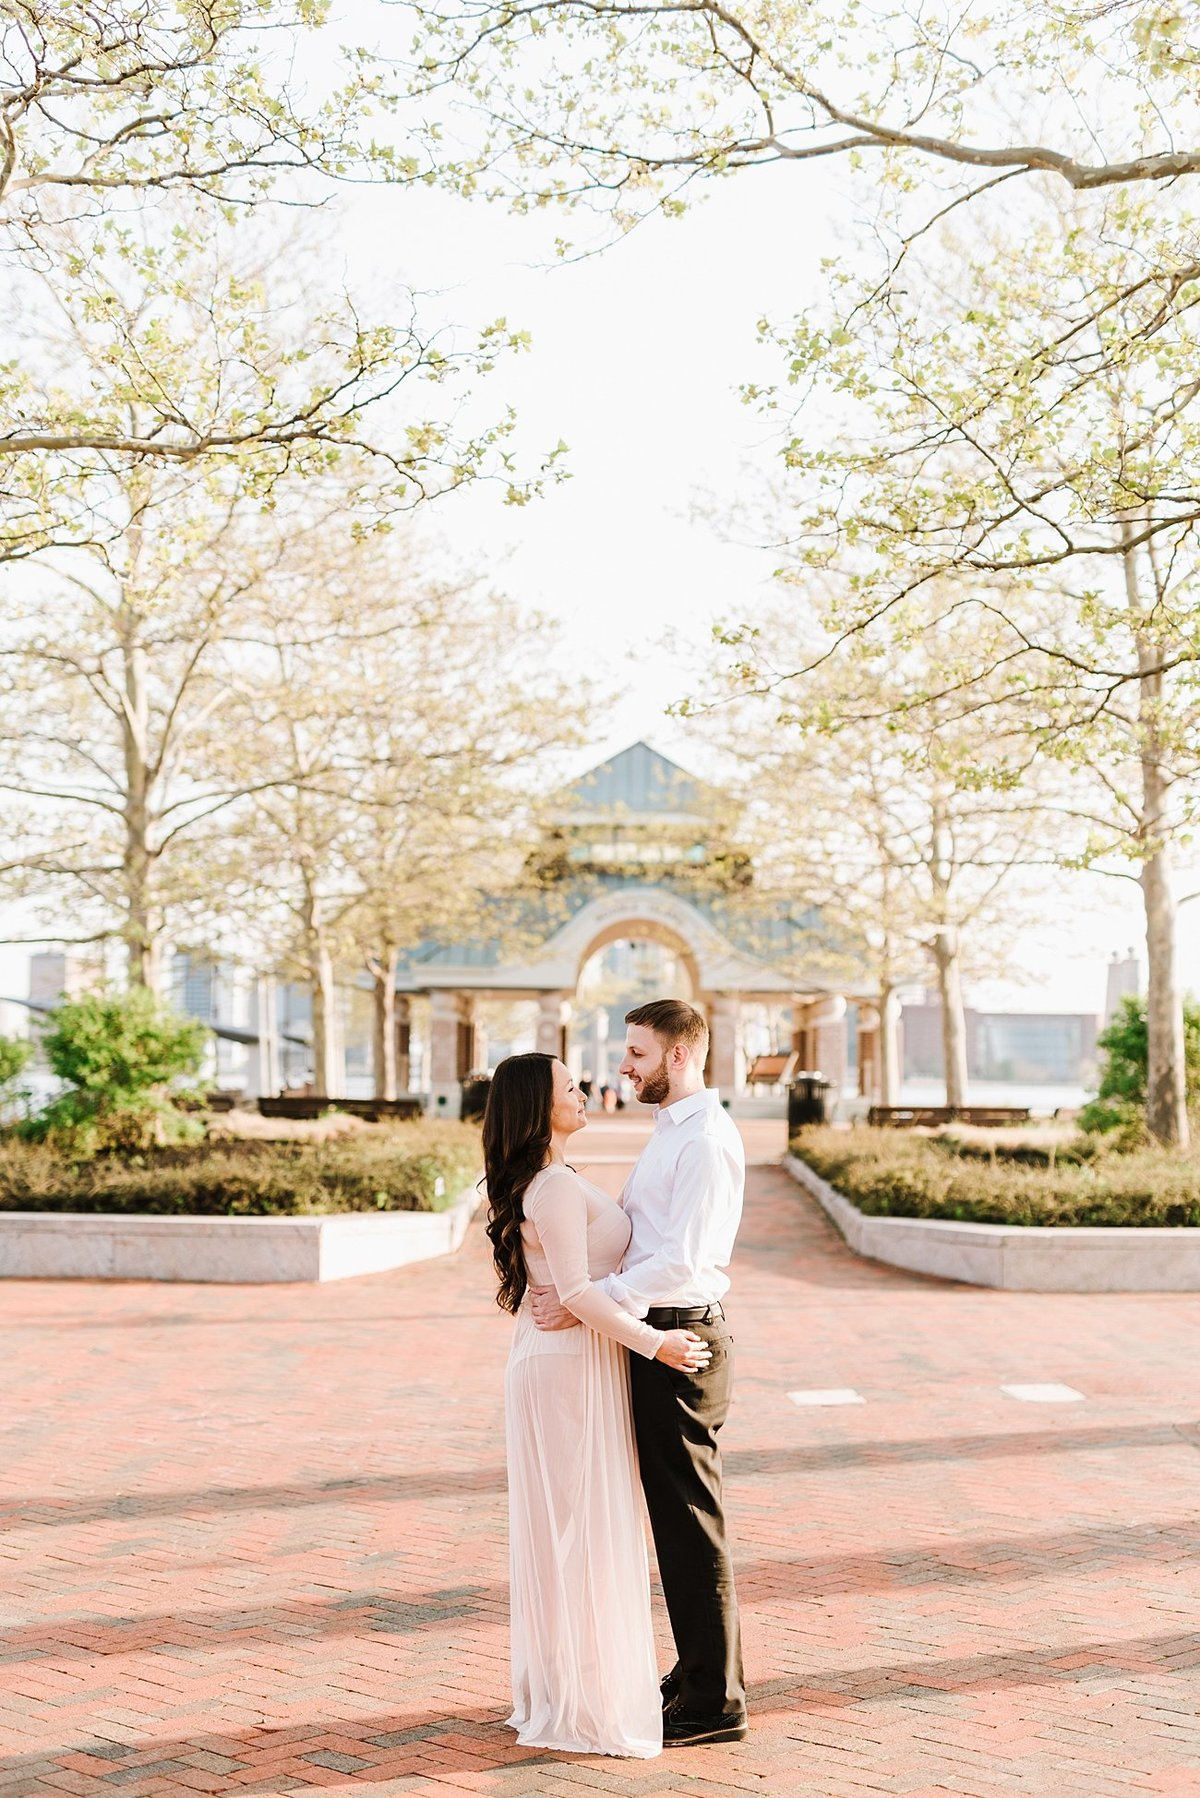 piers-park-engagement-session-boston-wedding-photographer-photo_0001